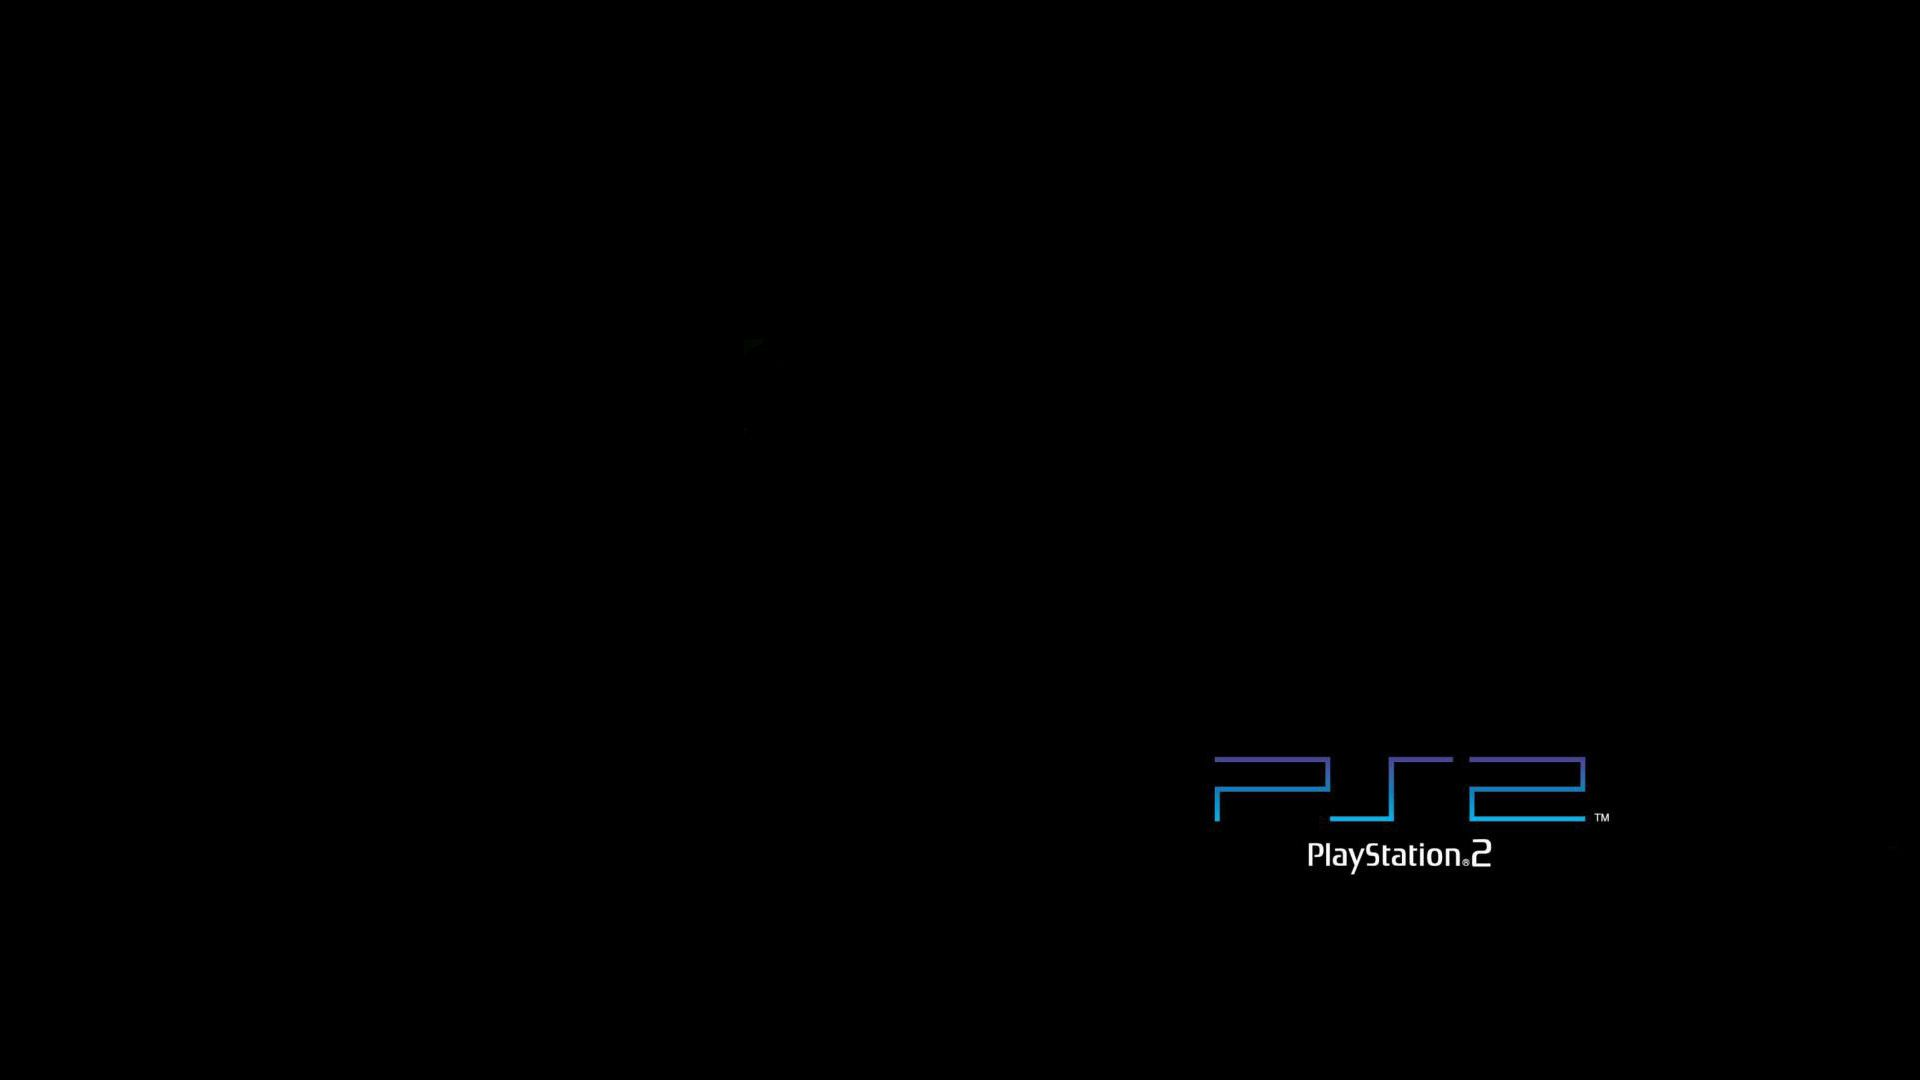 PS2 Wallpapers   Top PS2 Backgrounds   WallpaperAccess 1920x1080